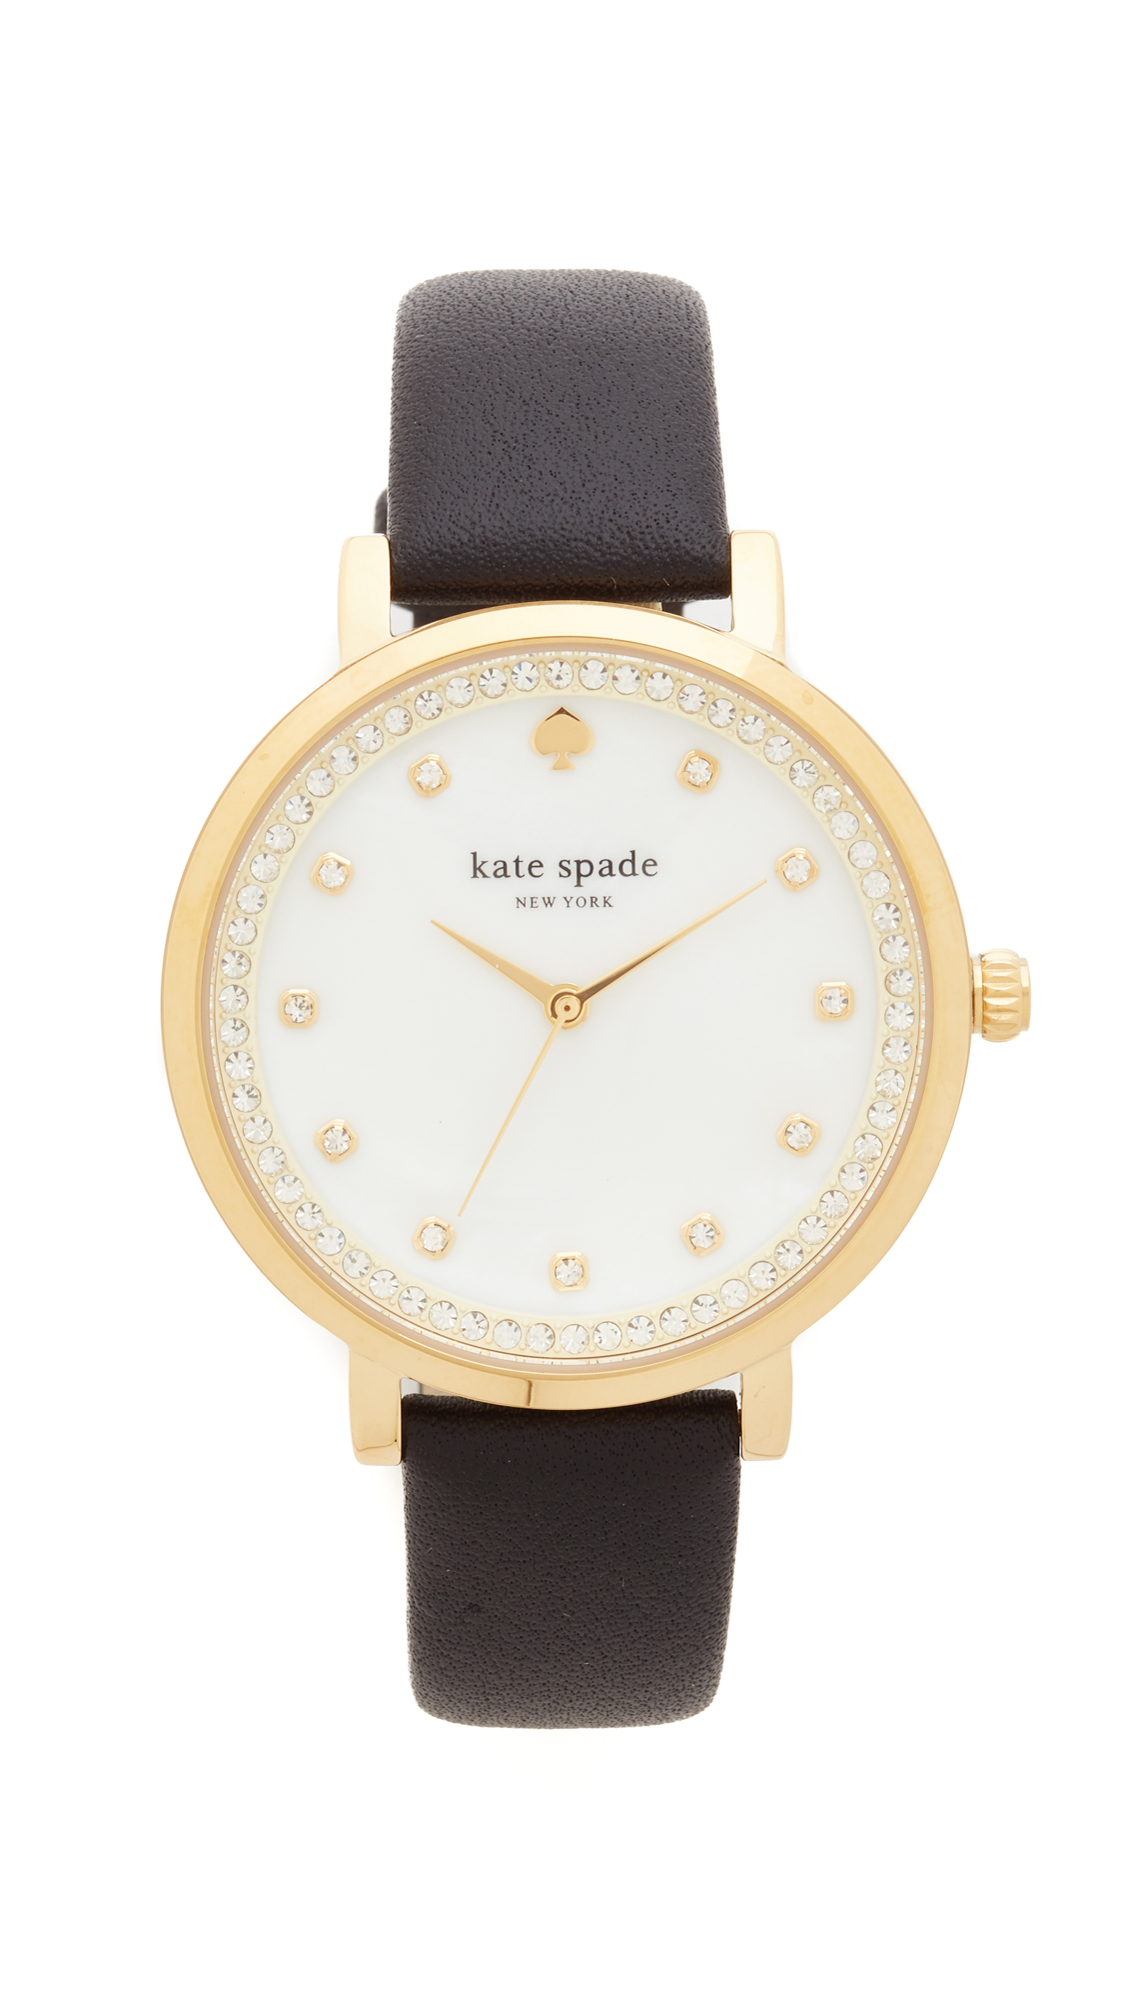 Kate Spade New York Monterey Watch - Gold at Shopbop